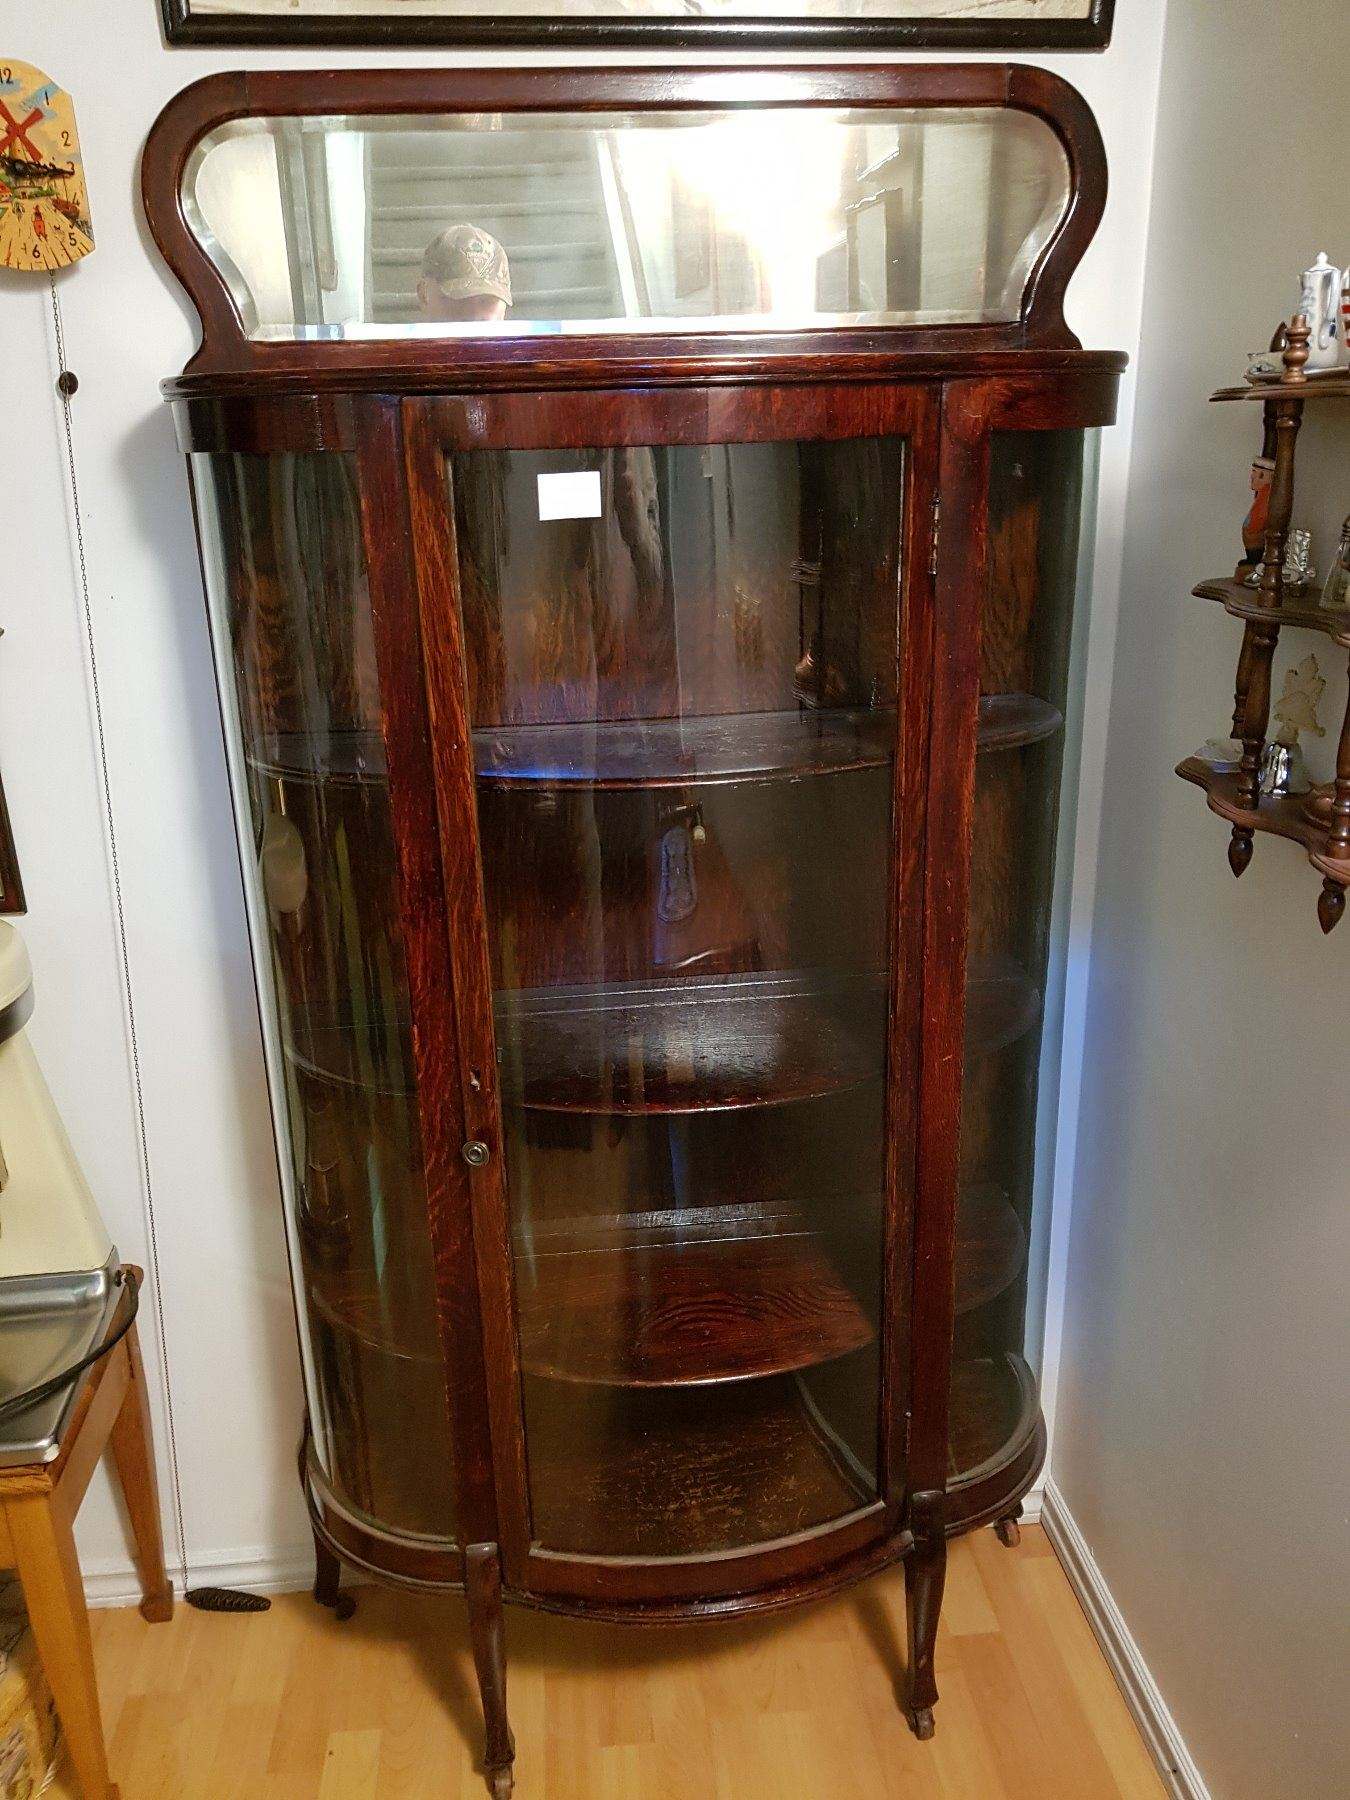 Image 1 : Antique Curved Glass China Cabinet With Mirror ... - Antique Curved Glass China Cabinet With Mirror